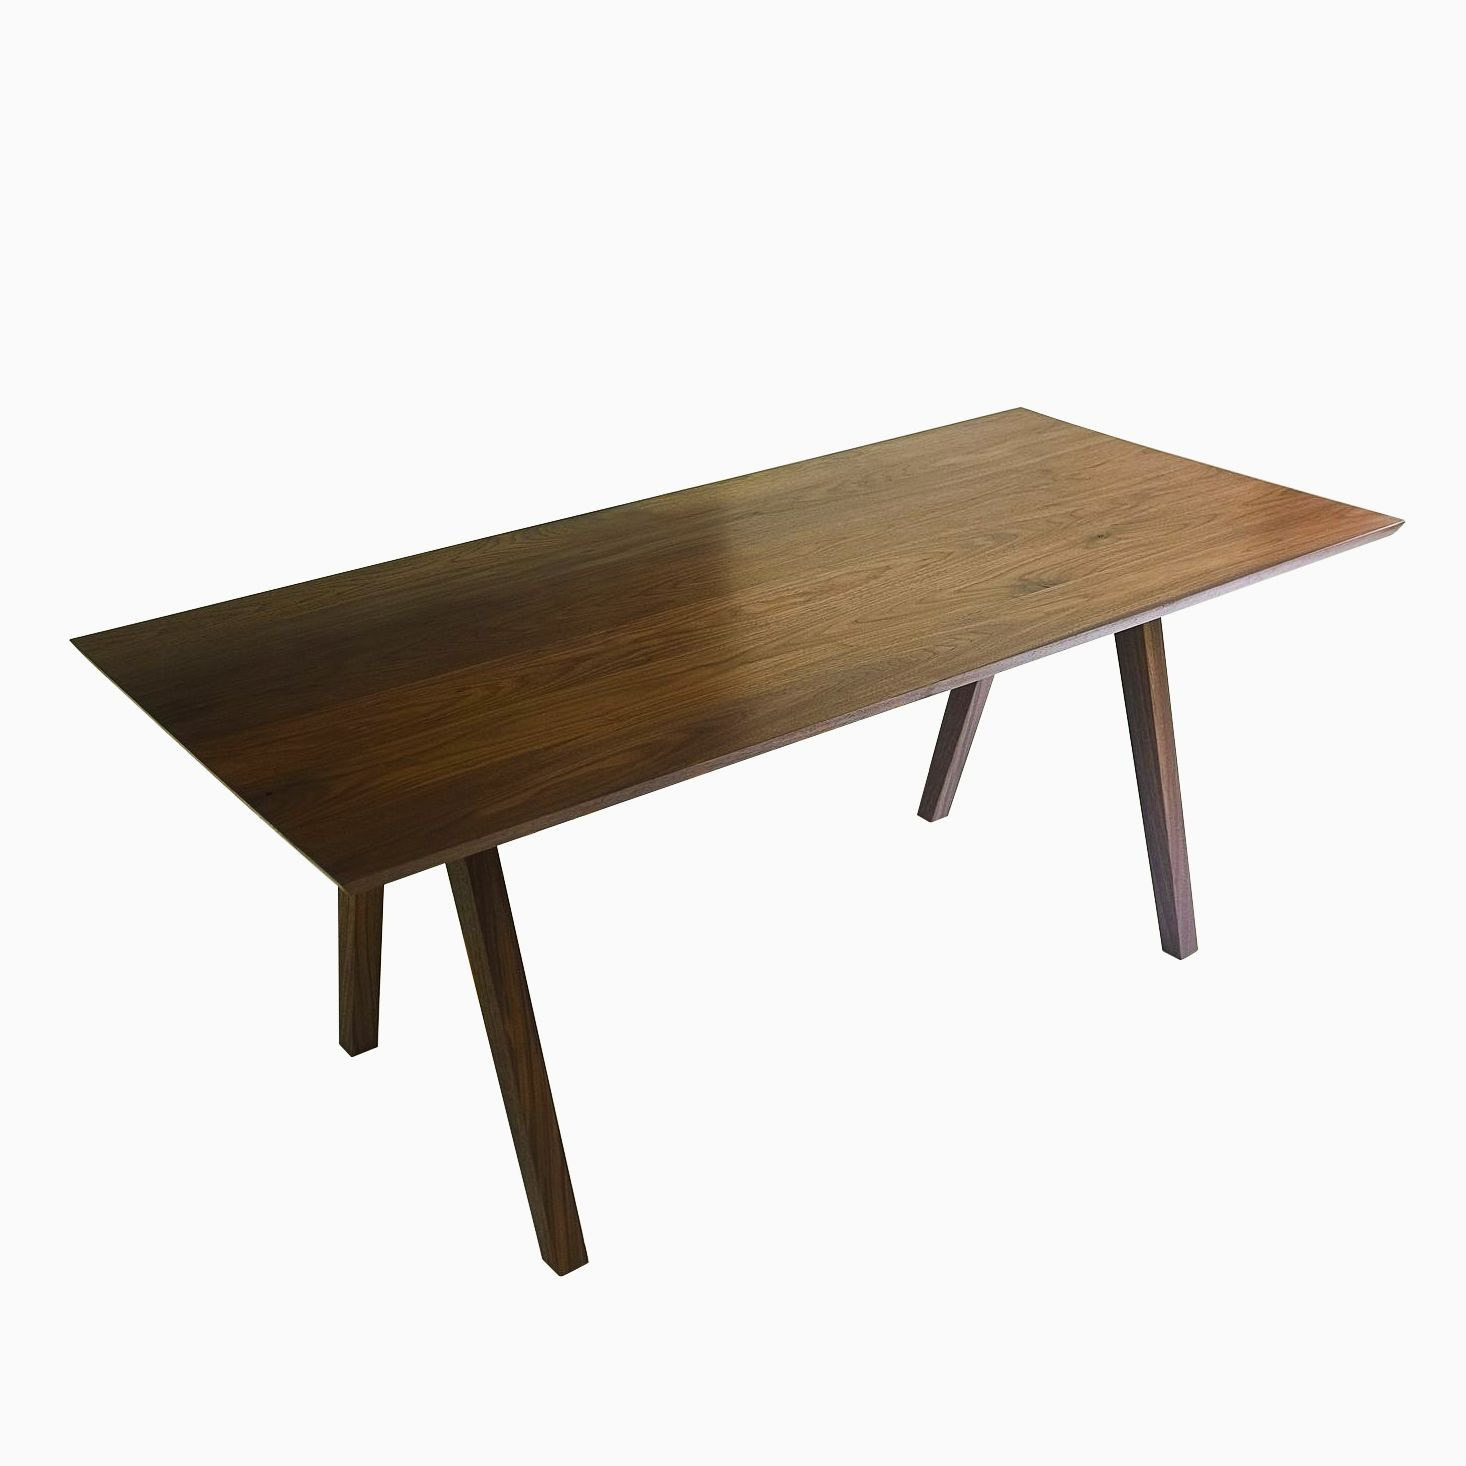 Buy A Hand Crafted Mid Century Modern Solid Walnut Dining Table The